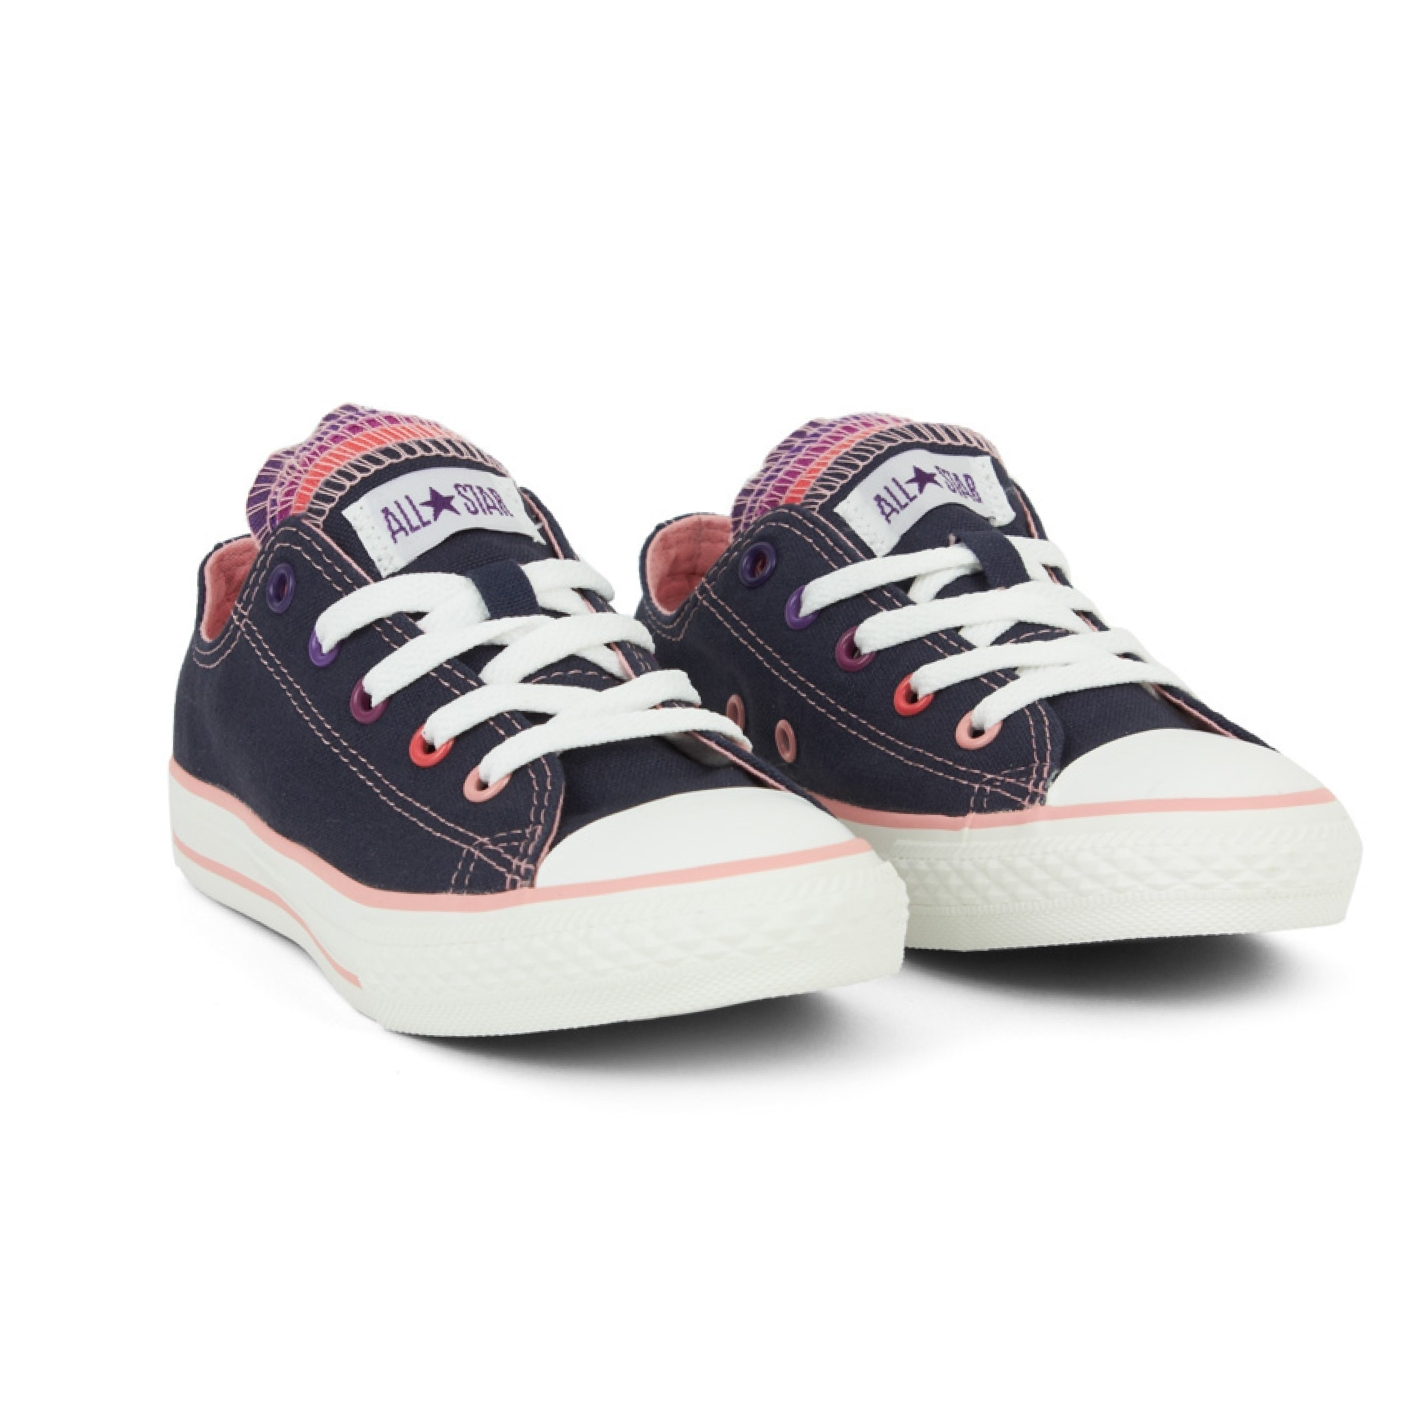 product photography shoes trainers converse allstars packshot Brighton London Flare Studio